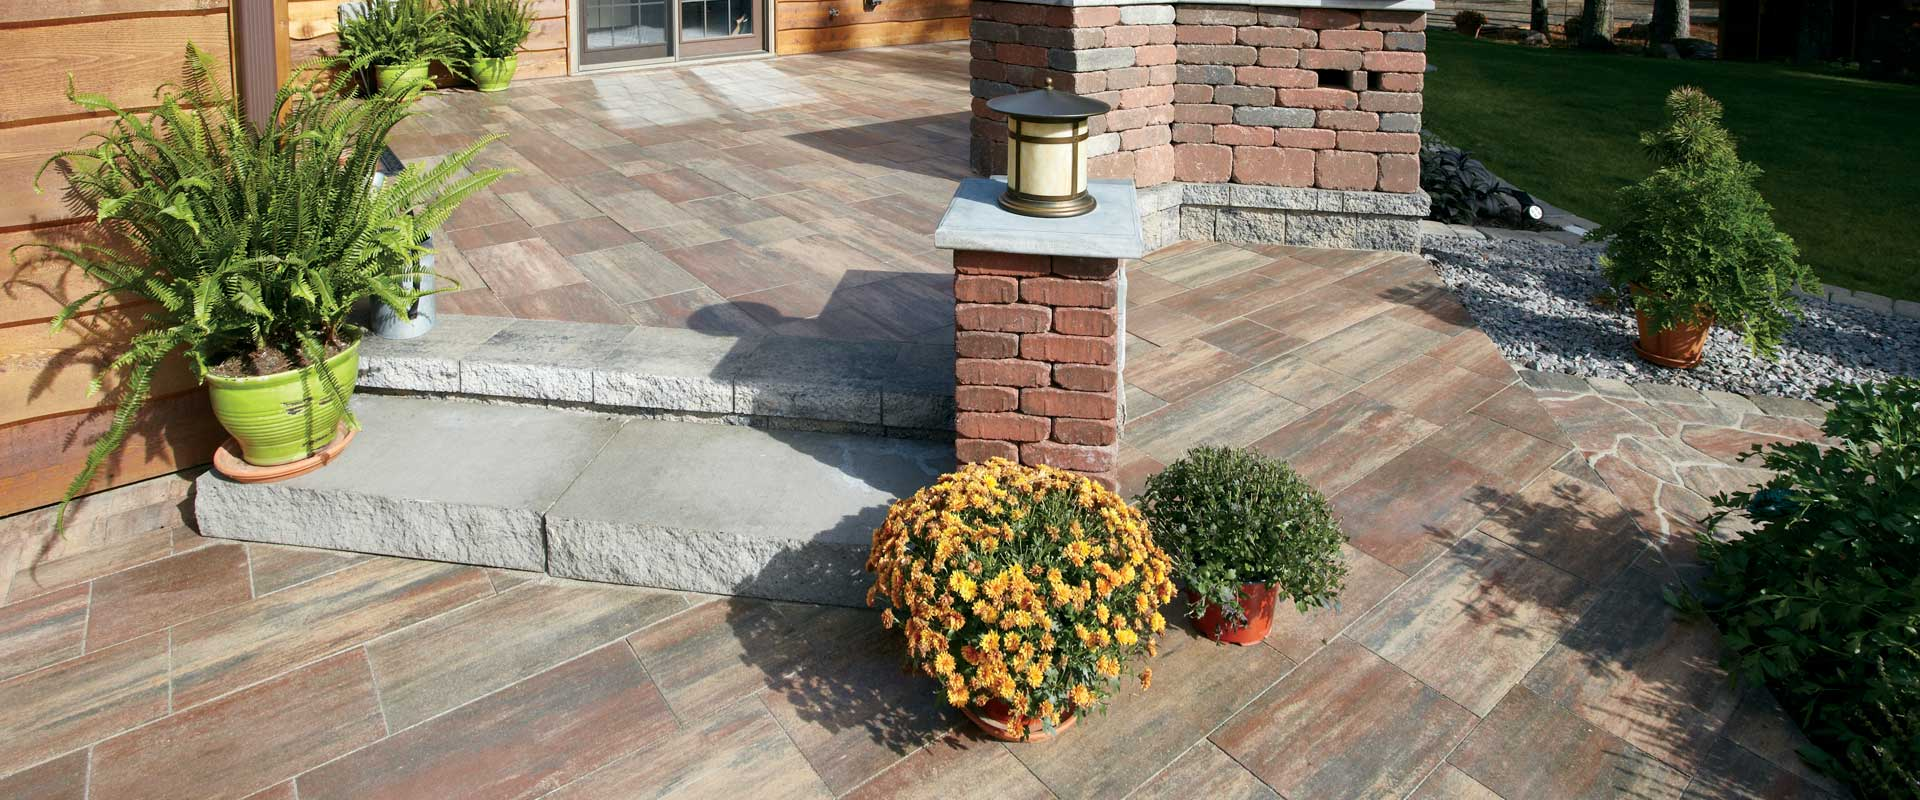 How to Buy Patio Pavers